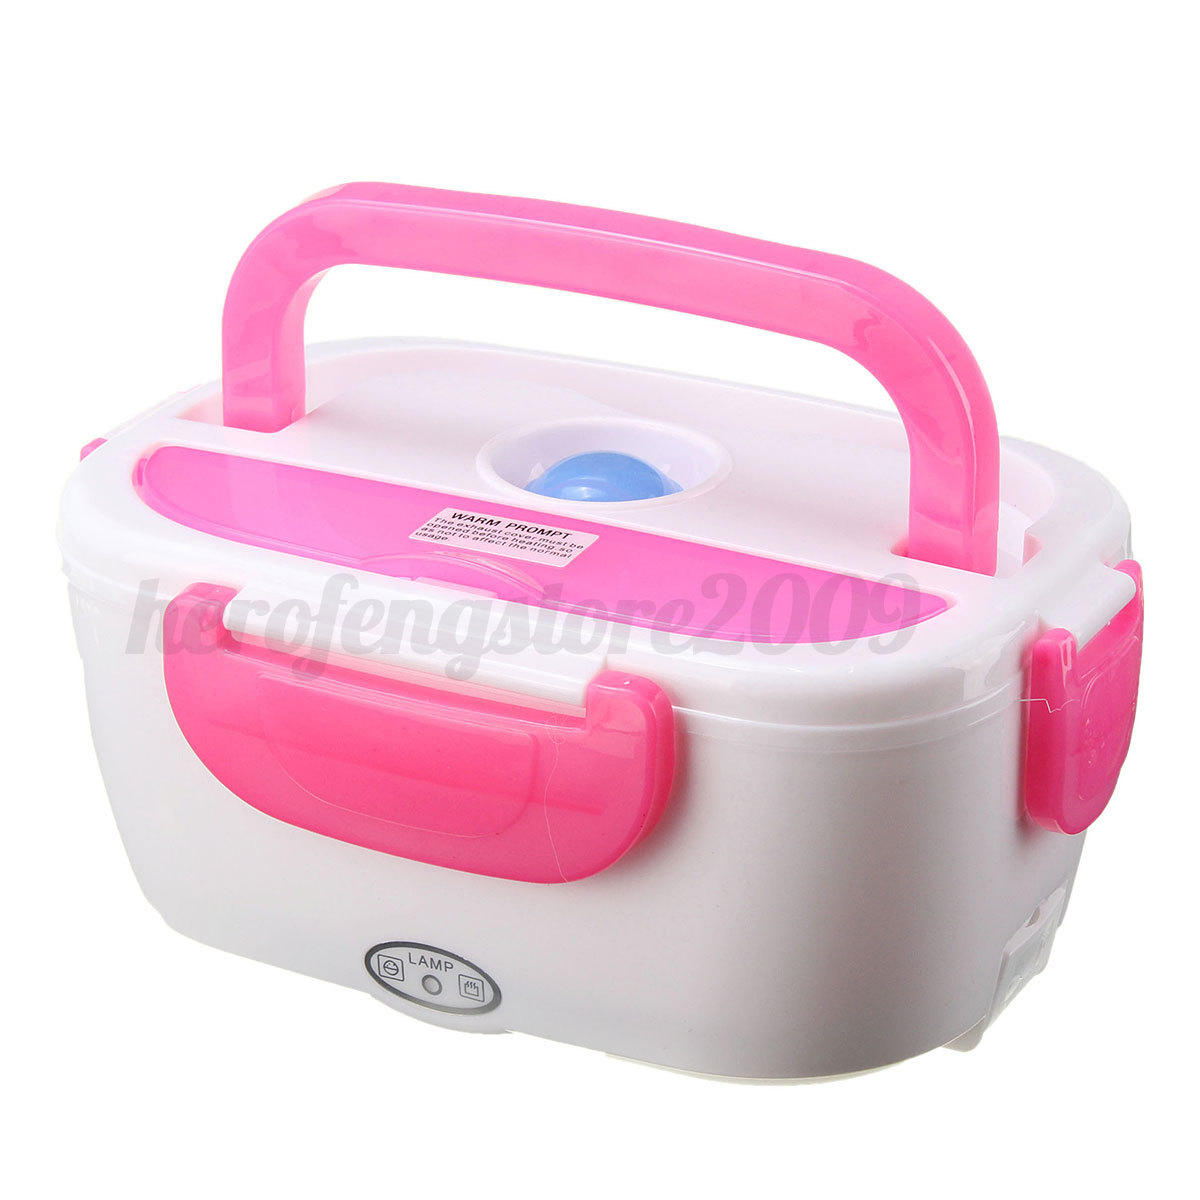 Portable Food Warmer Box ~ Portable car plug electric heating lunch box bento healthy